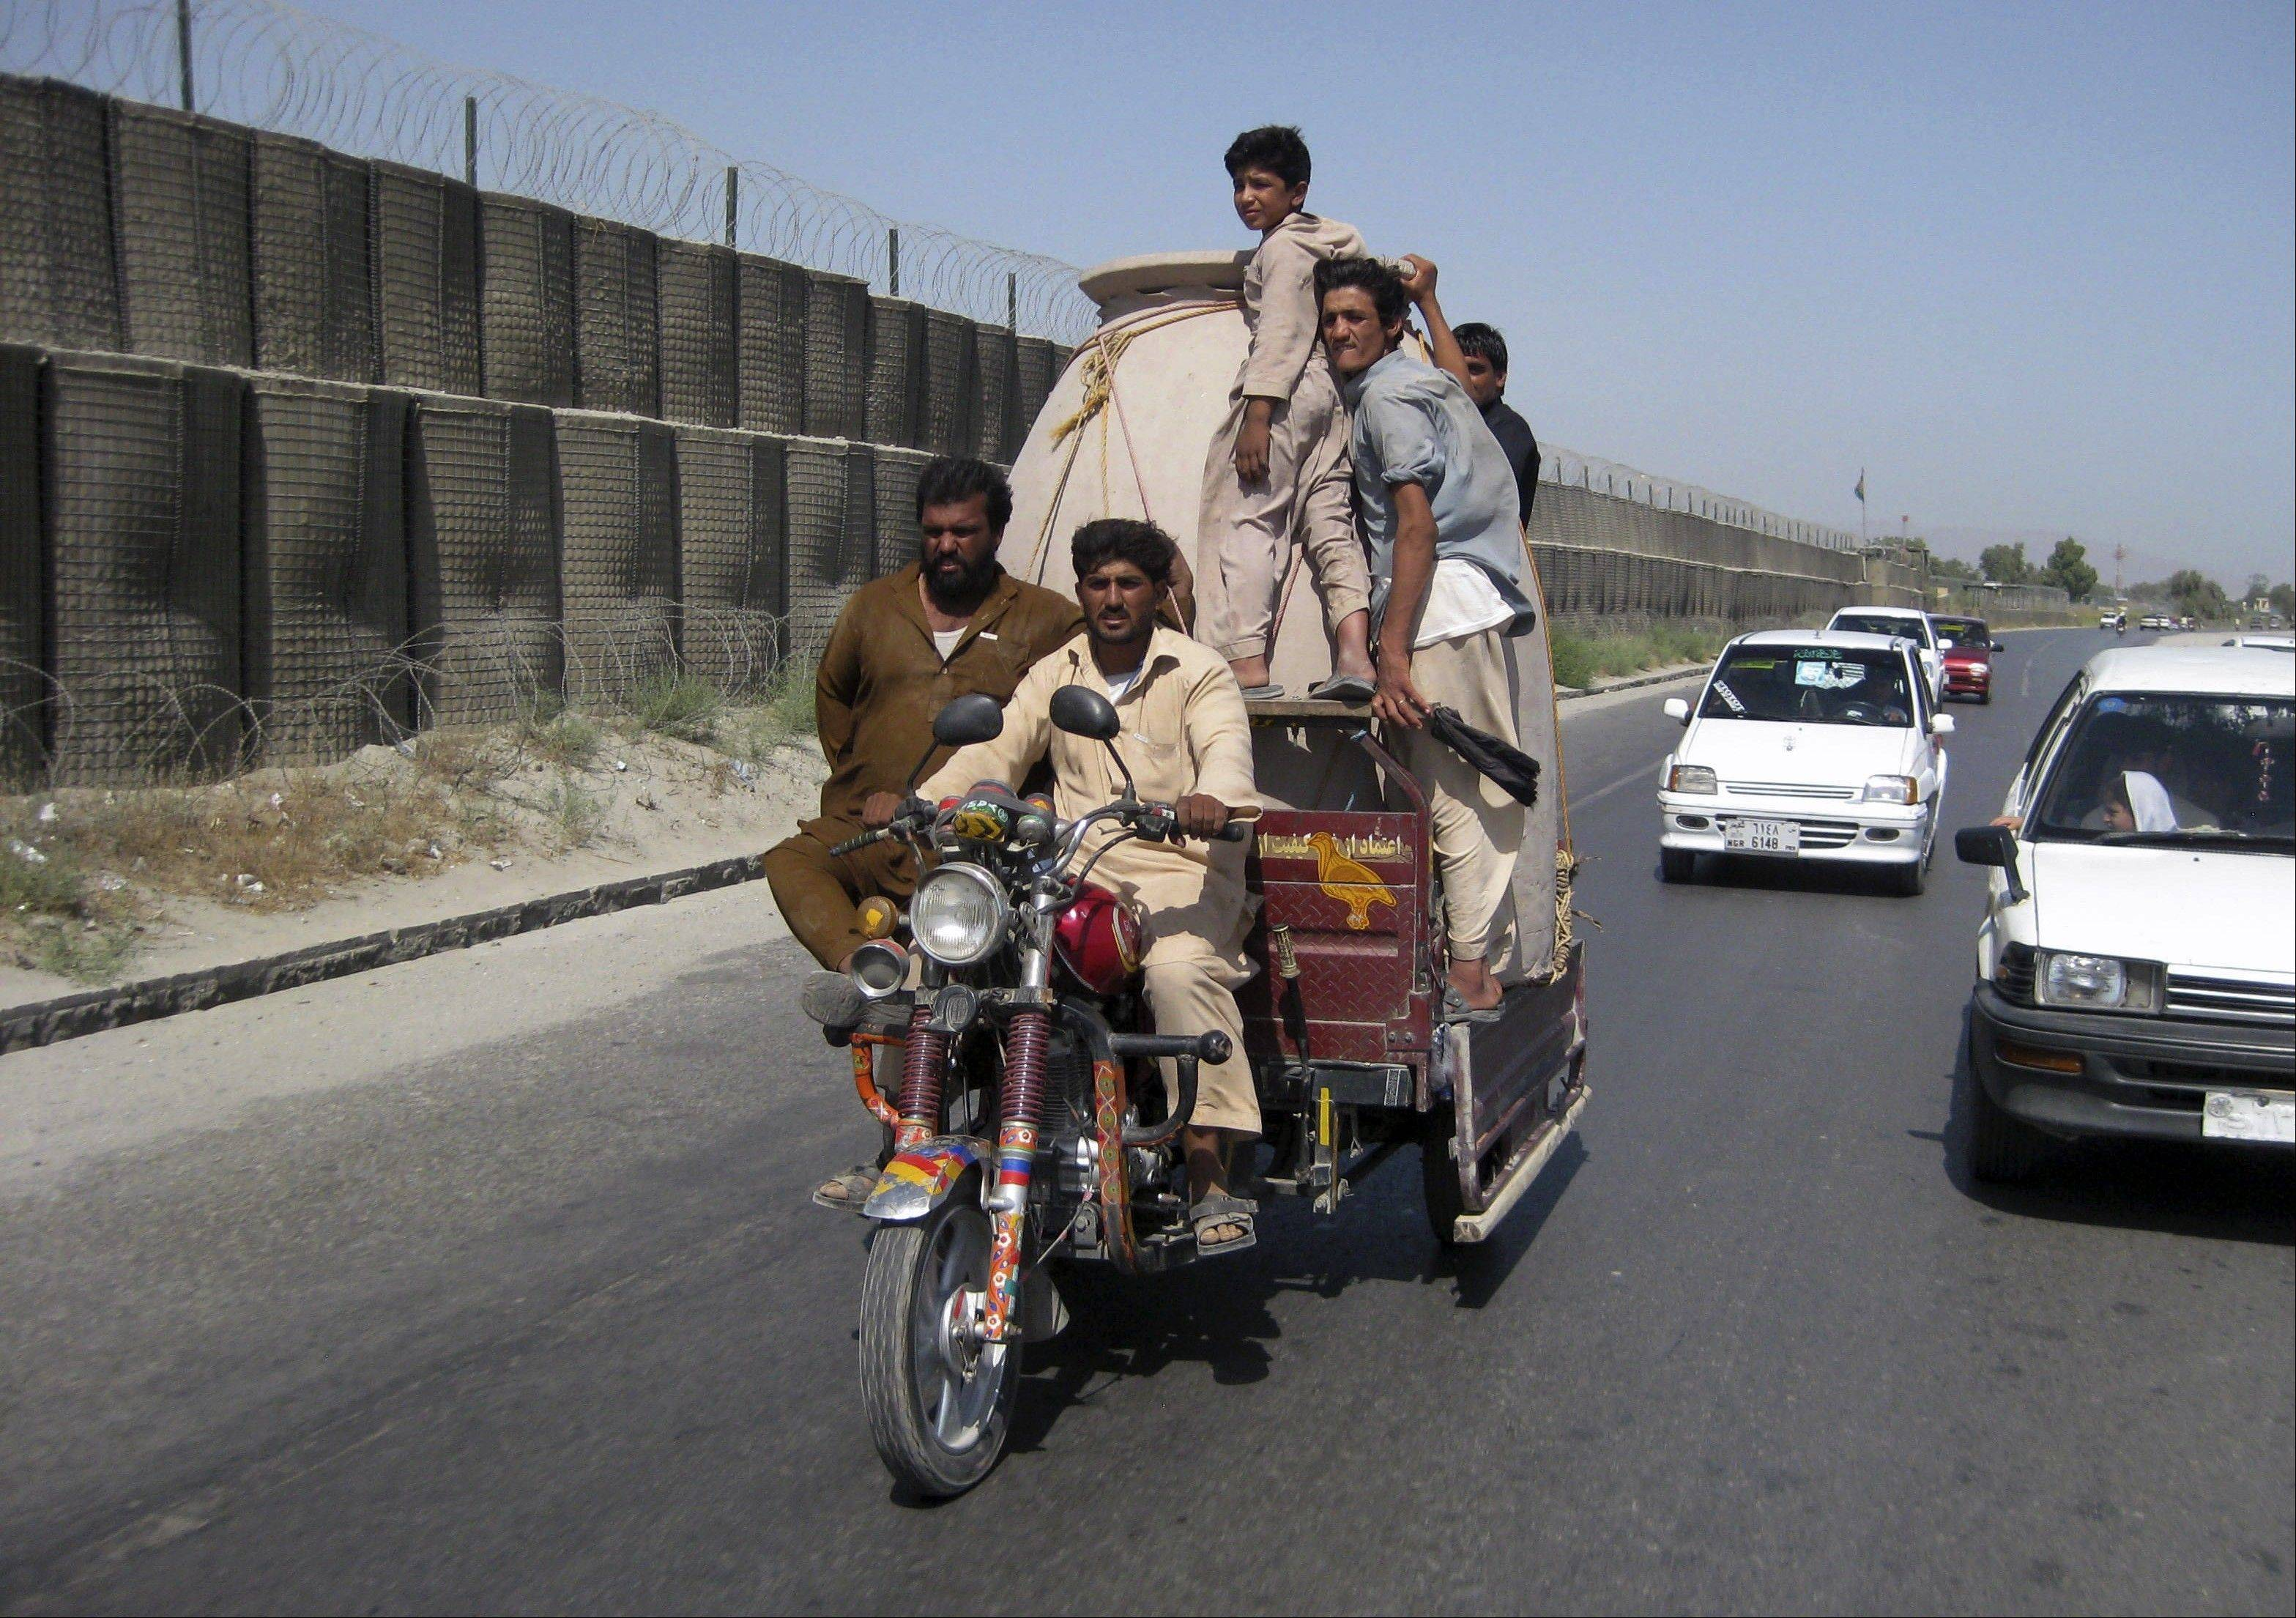 Afghans travel in a motorcycle cart Saturday while transporting a traditional tandoor oven in Jalalabad, east of Kabul, Afghanistan.